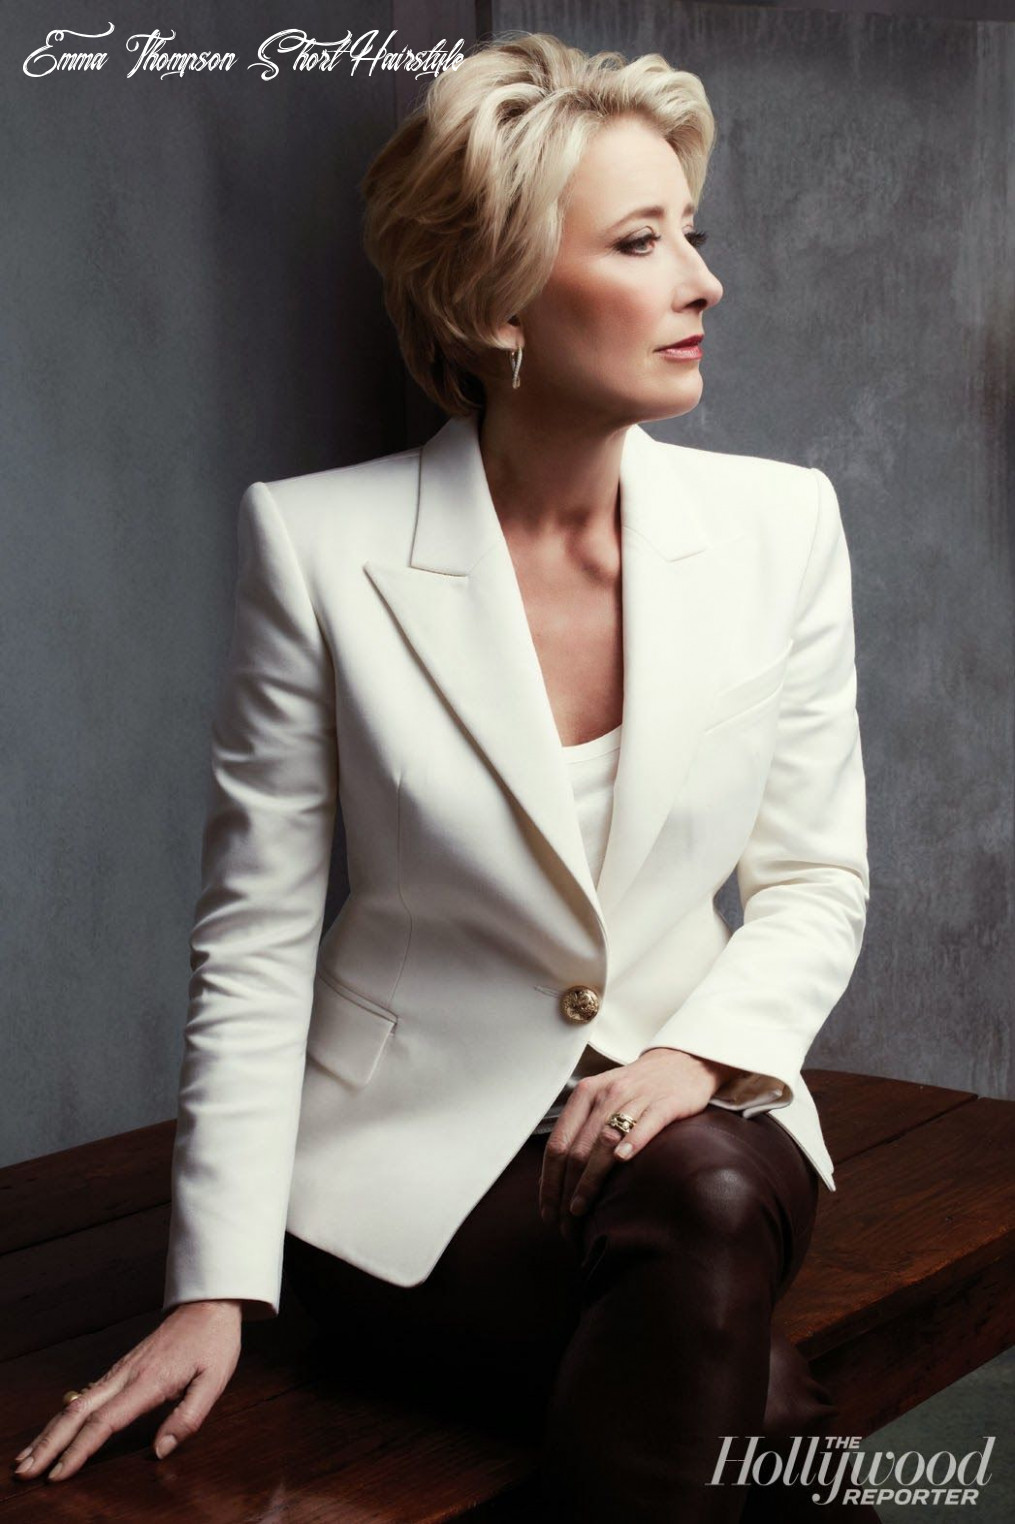 Emma Thompson (With images) | Short hairstyles for women, Short ...